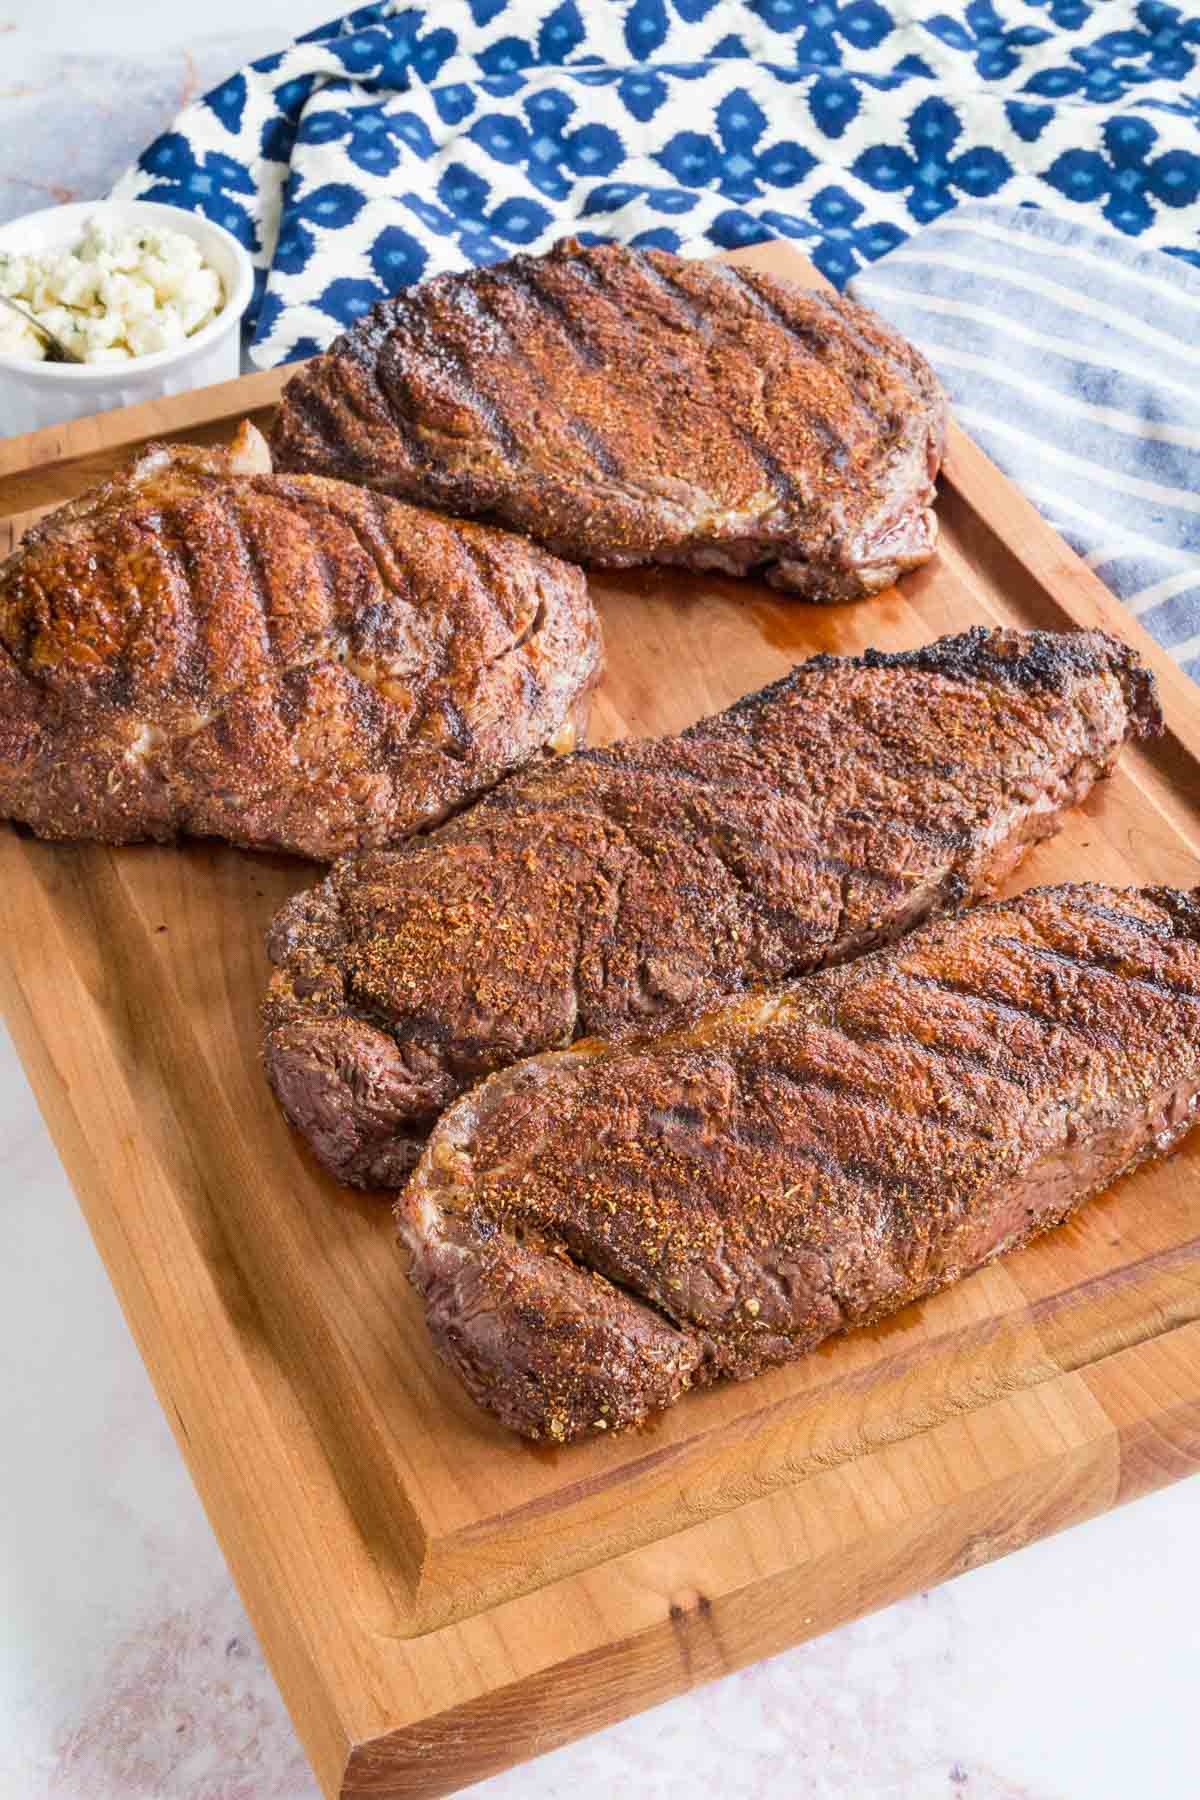 Four Black and Bleu Steaks on a Cutting Board Beside Two Blue Kitchen Towels